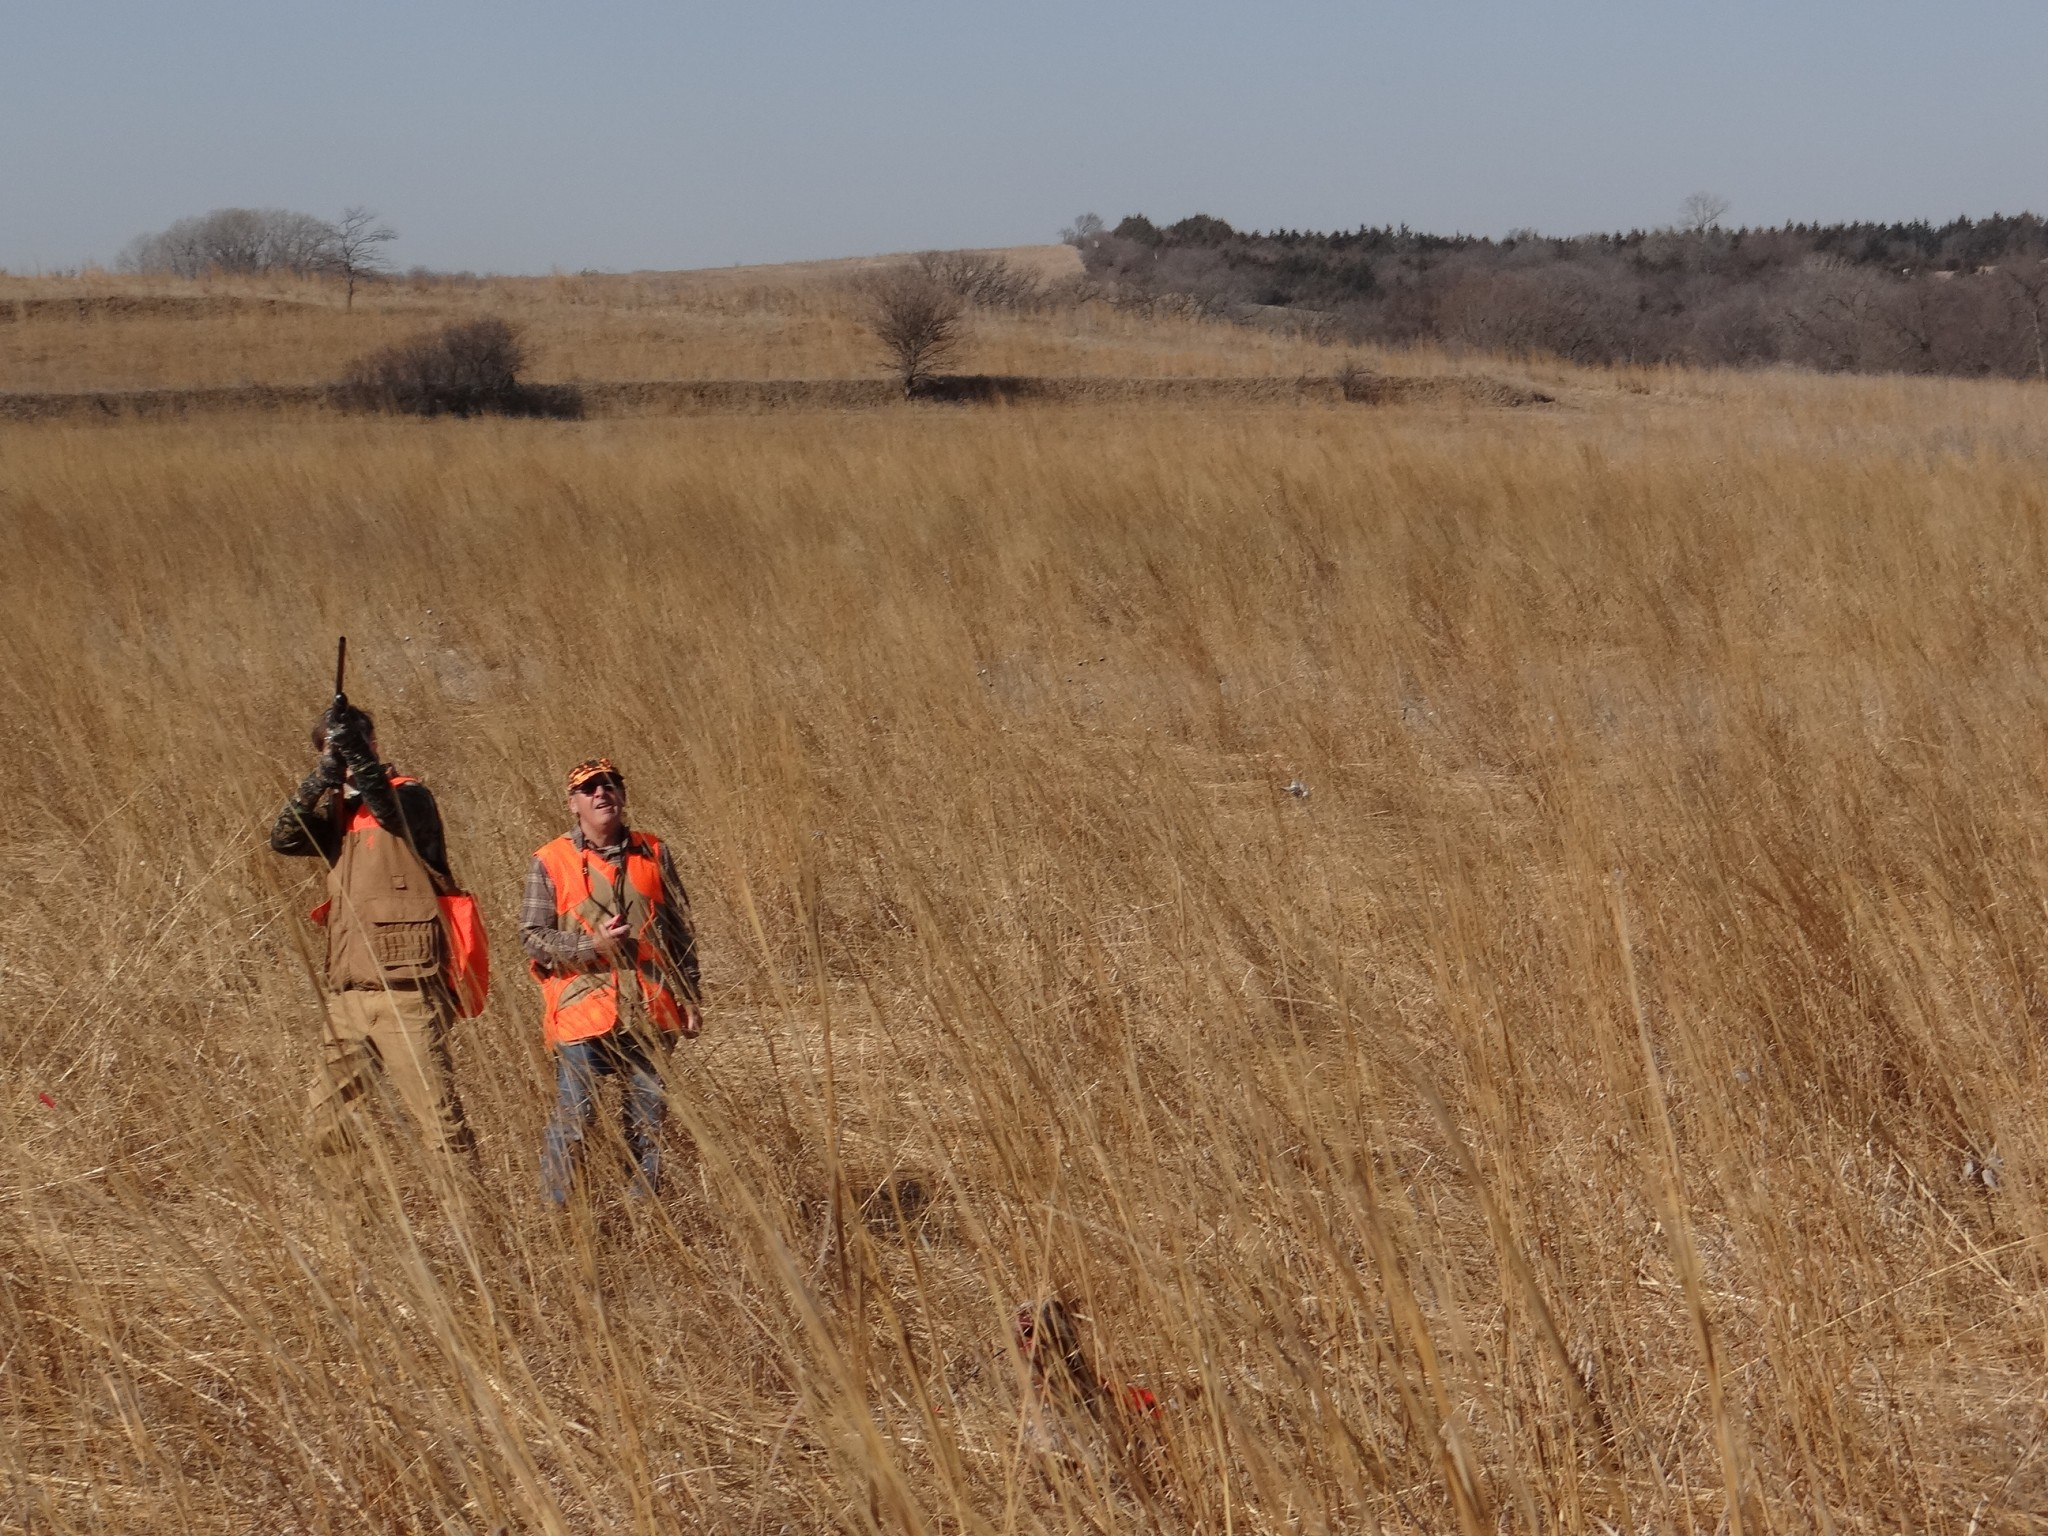 Upland game bird hunting at Oak Creek Sporting Club. Photo by Greg Wagner.